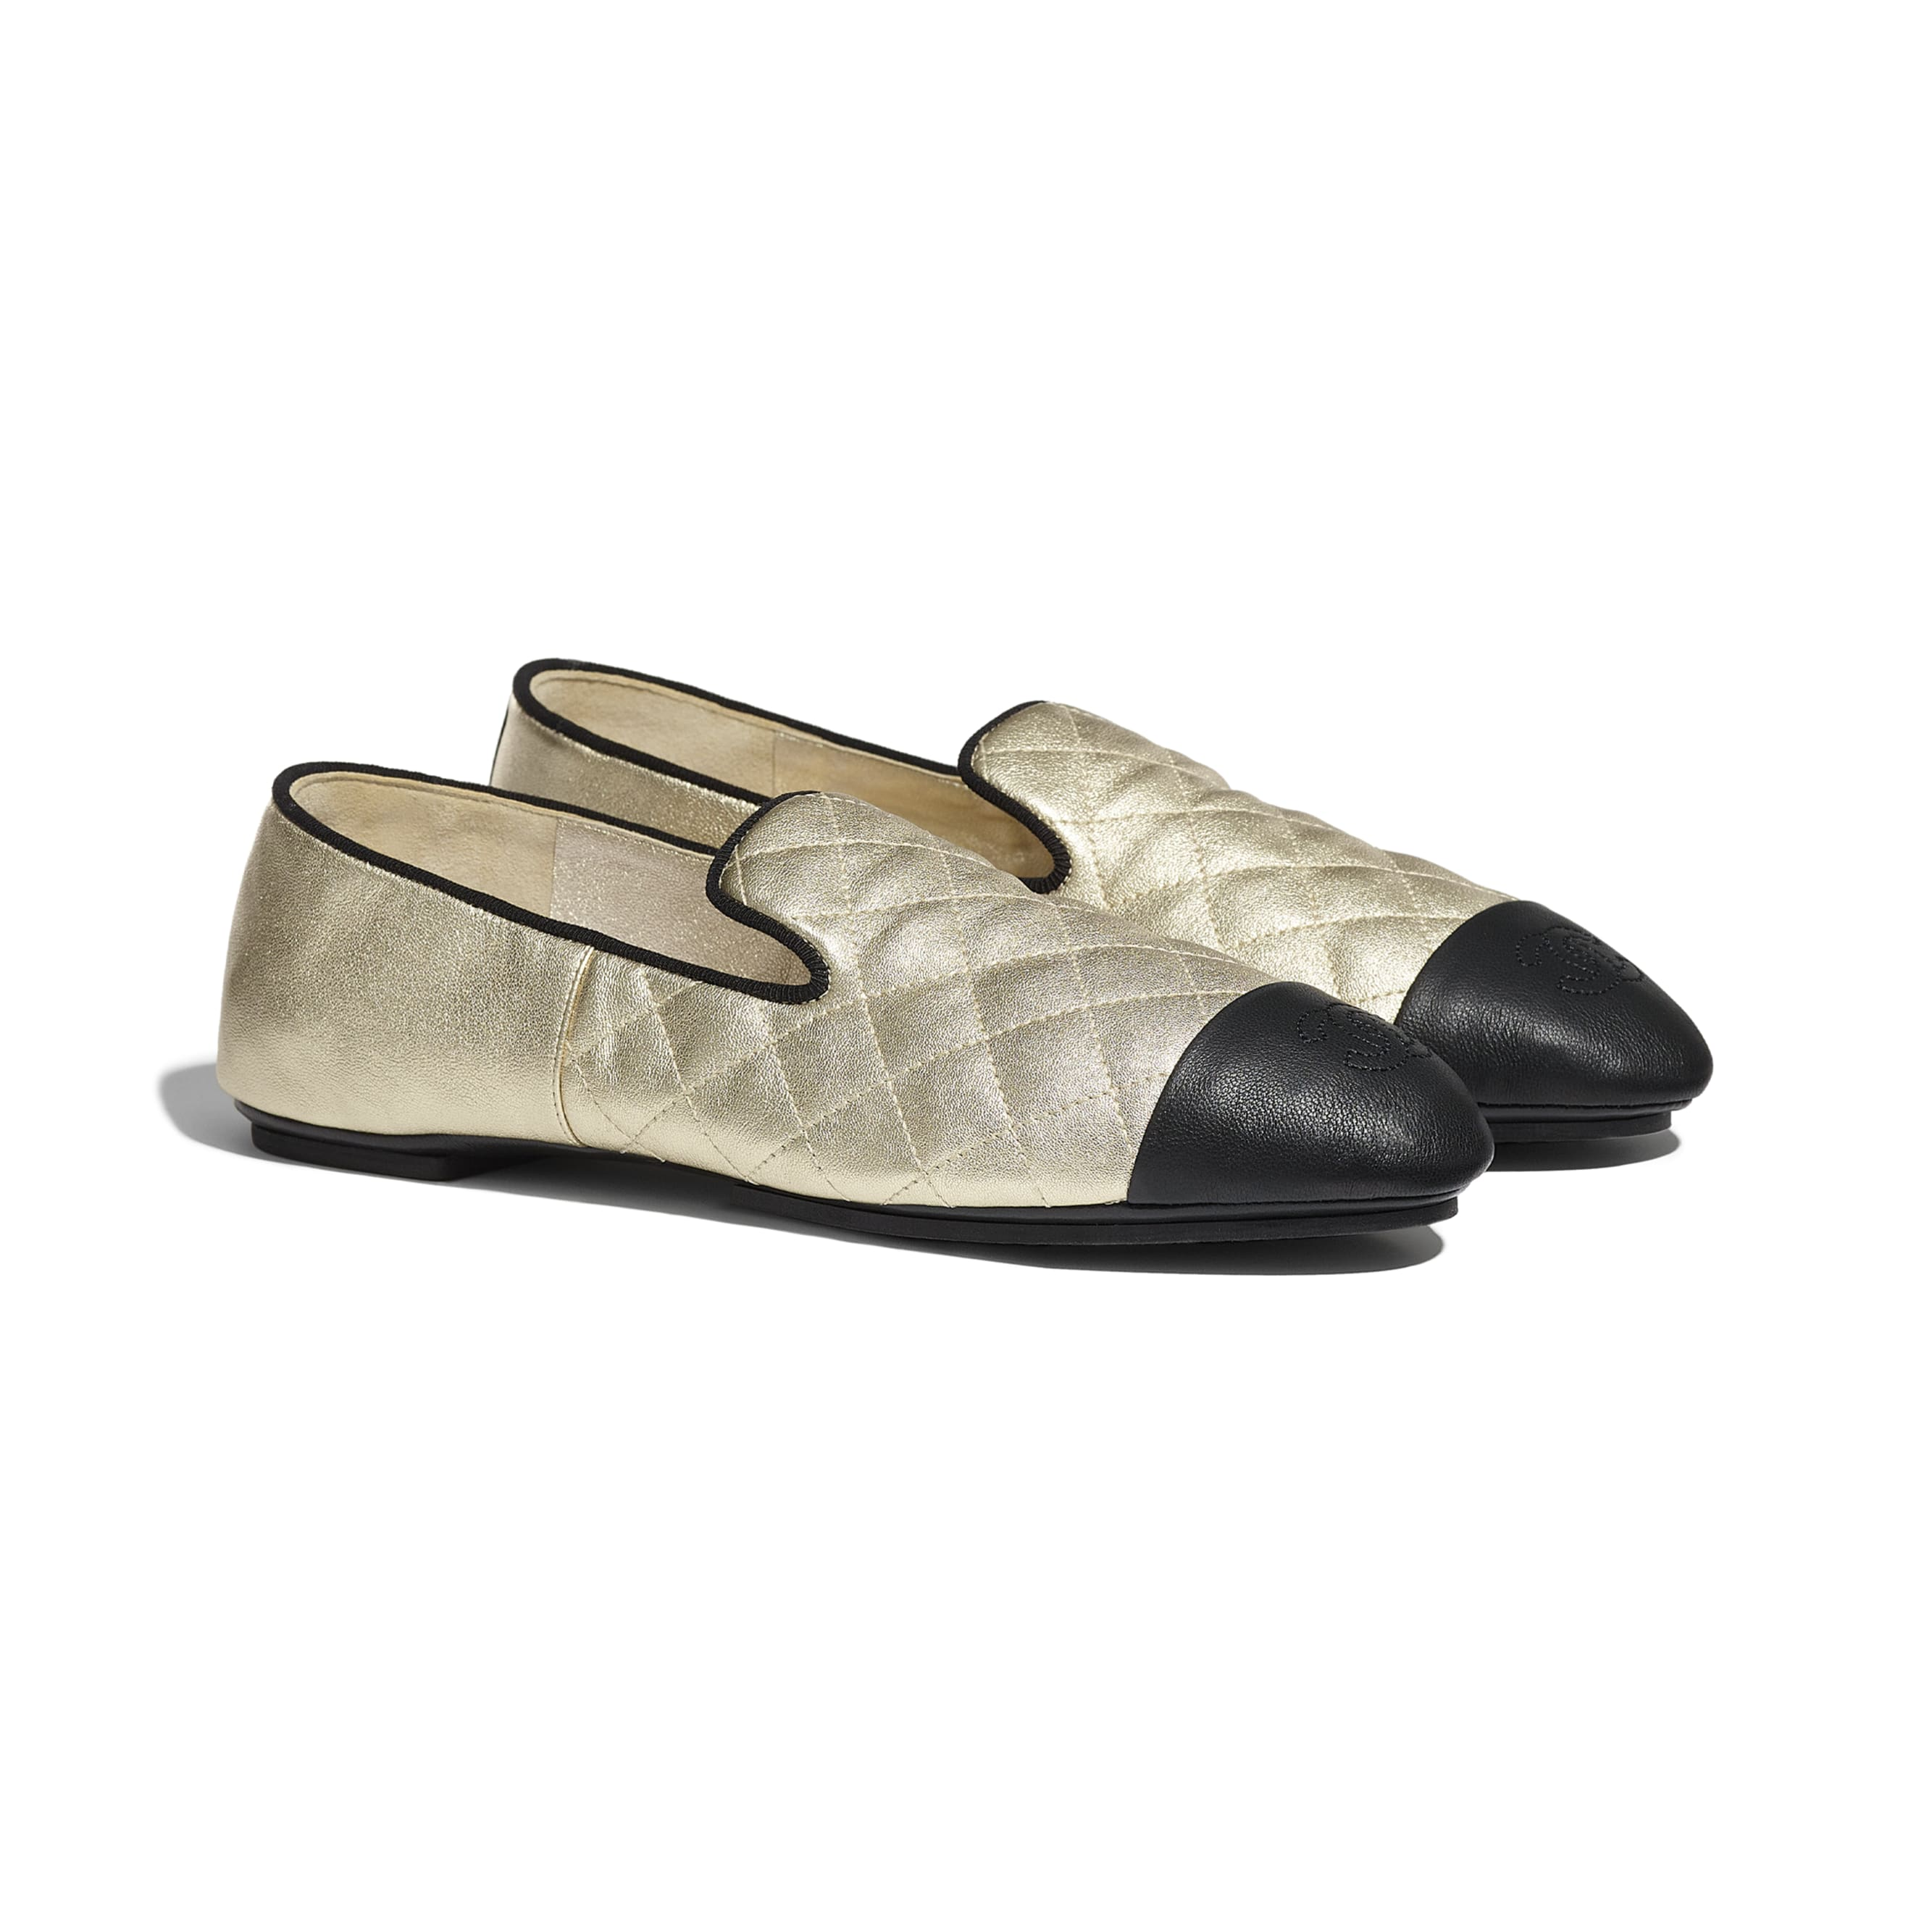 Loafers - Gold & Black - Laminated Lambskin & Lambskin - CHANEL - Alternative view - see standard sized version